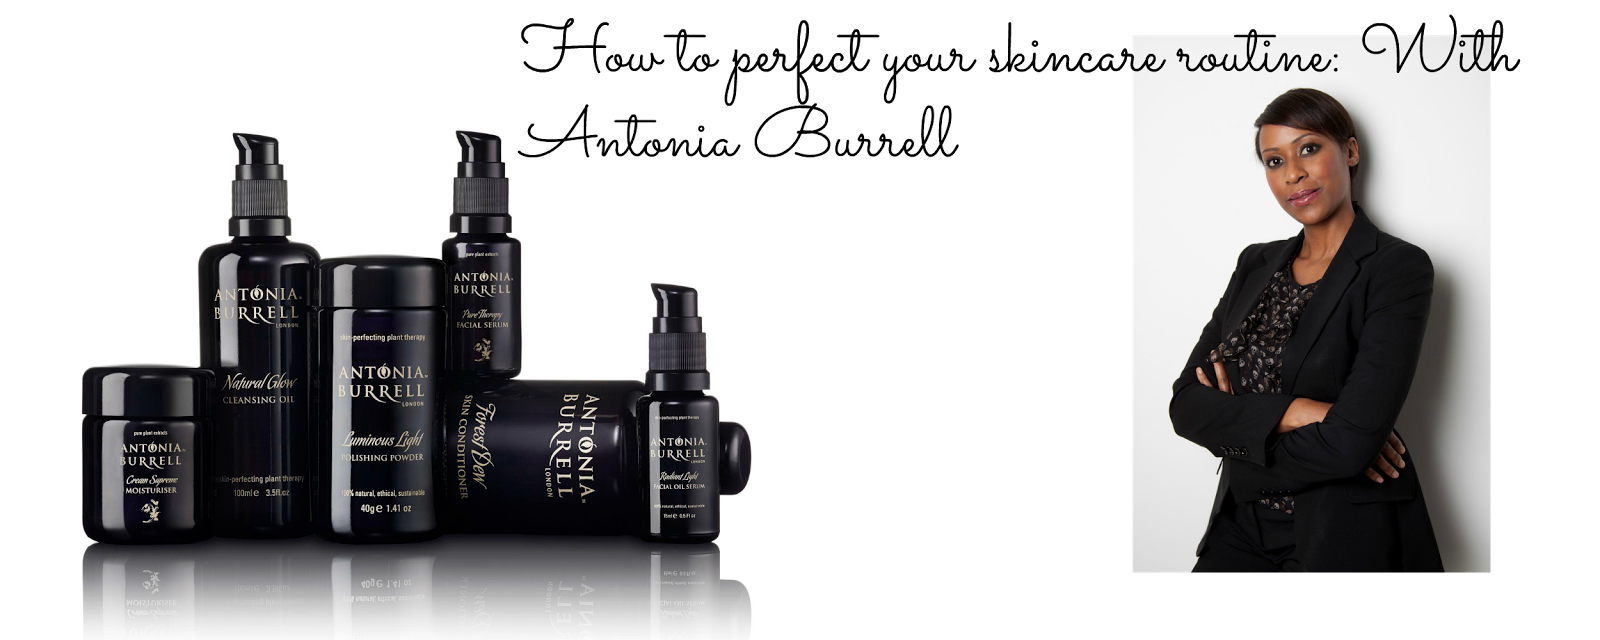 How to perfect your skincare routine with Antonia Burrell